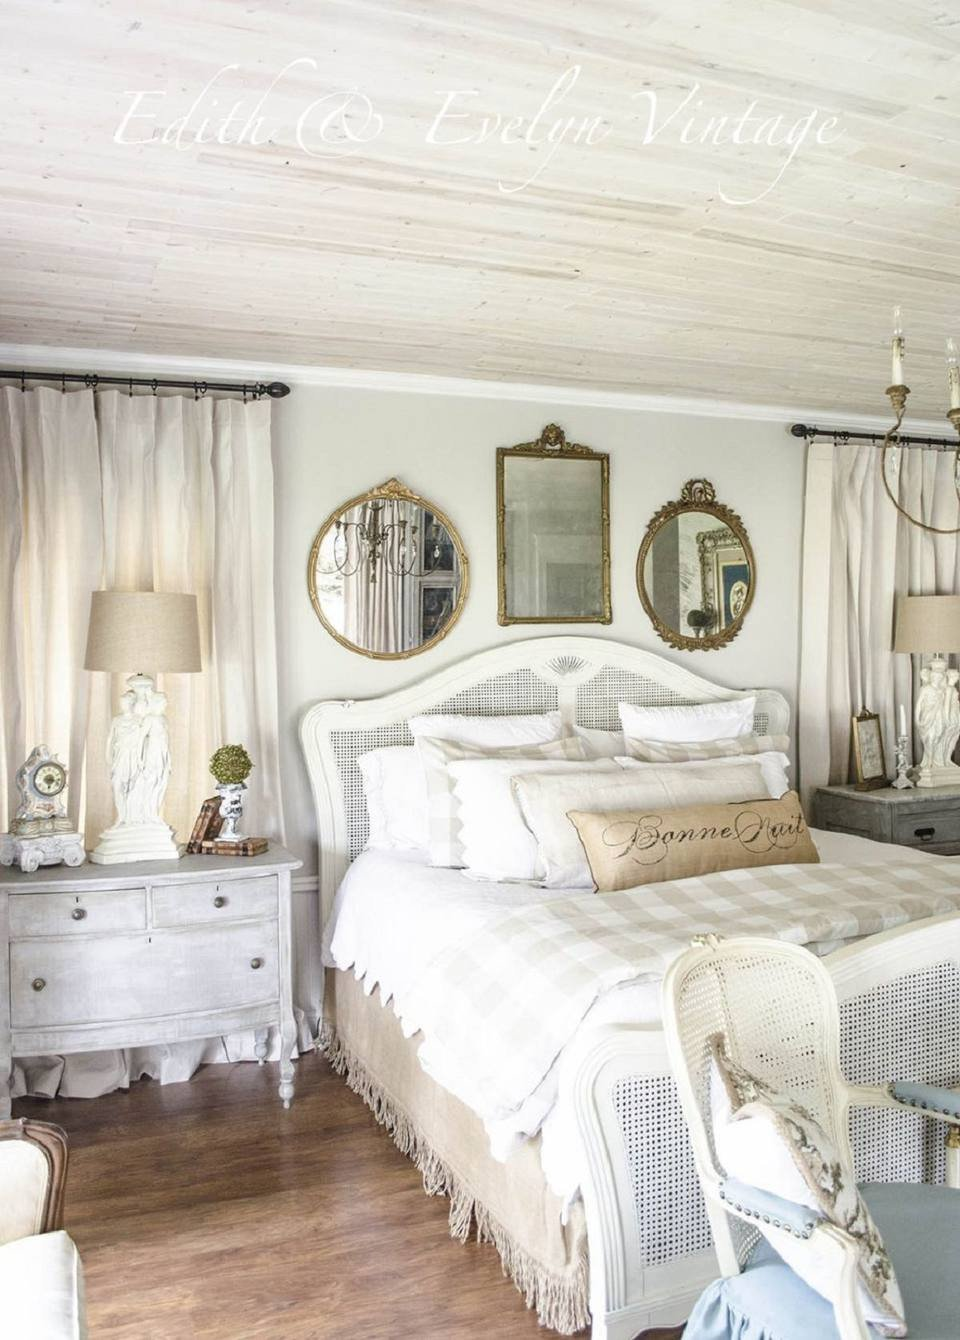 Lake House Decorating Ideas Bedroom Beautiful Ideas for French Country Style Bedroom Decor